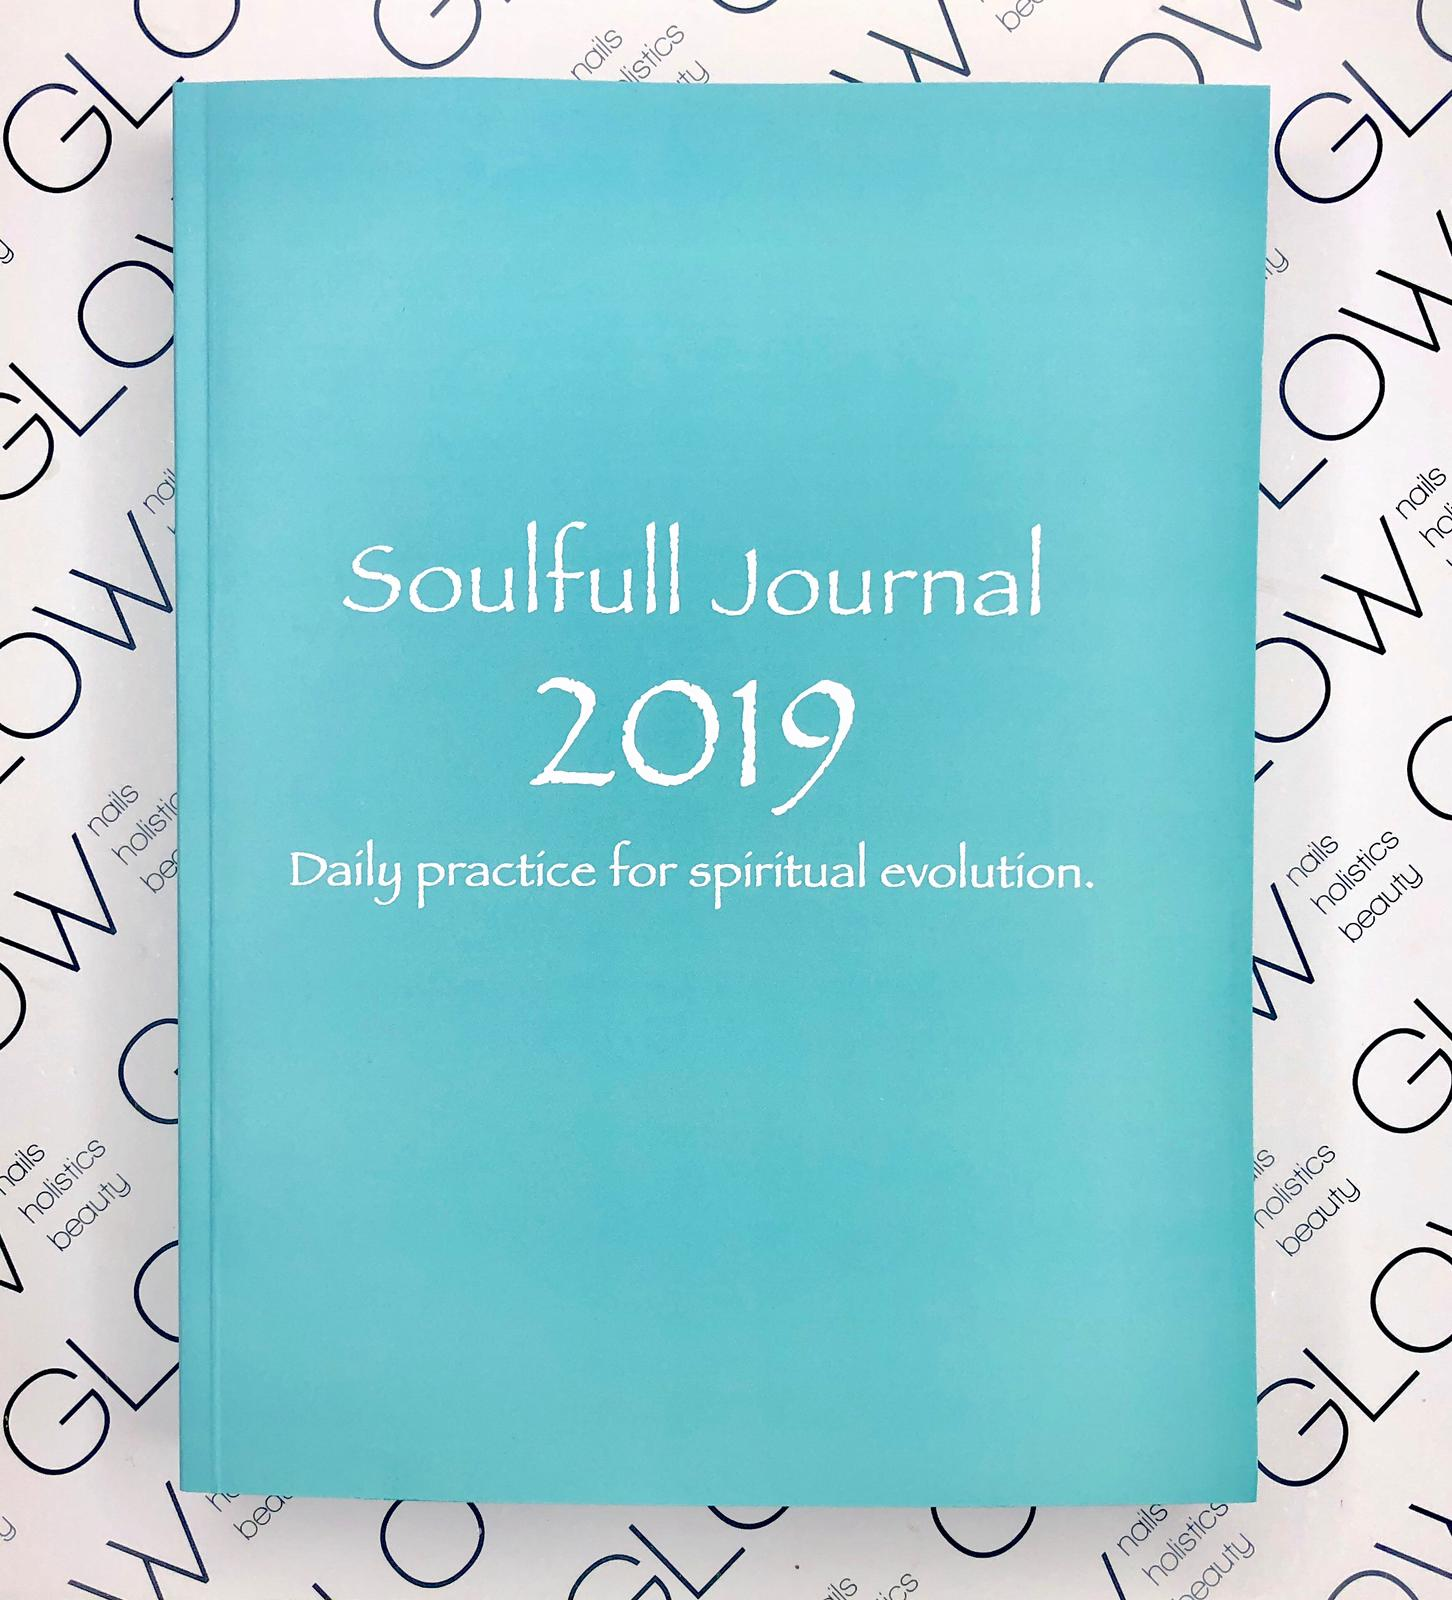 Soulfull Journal